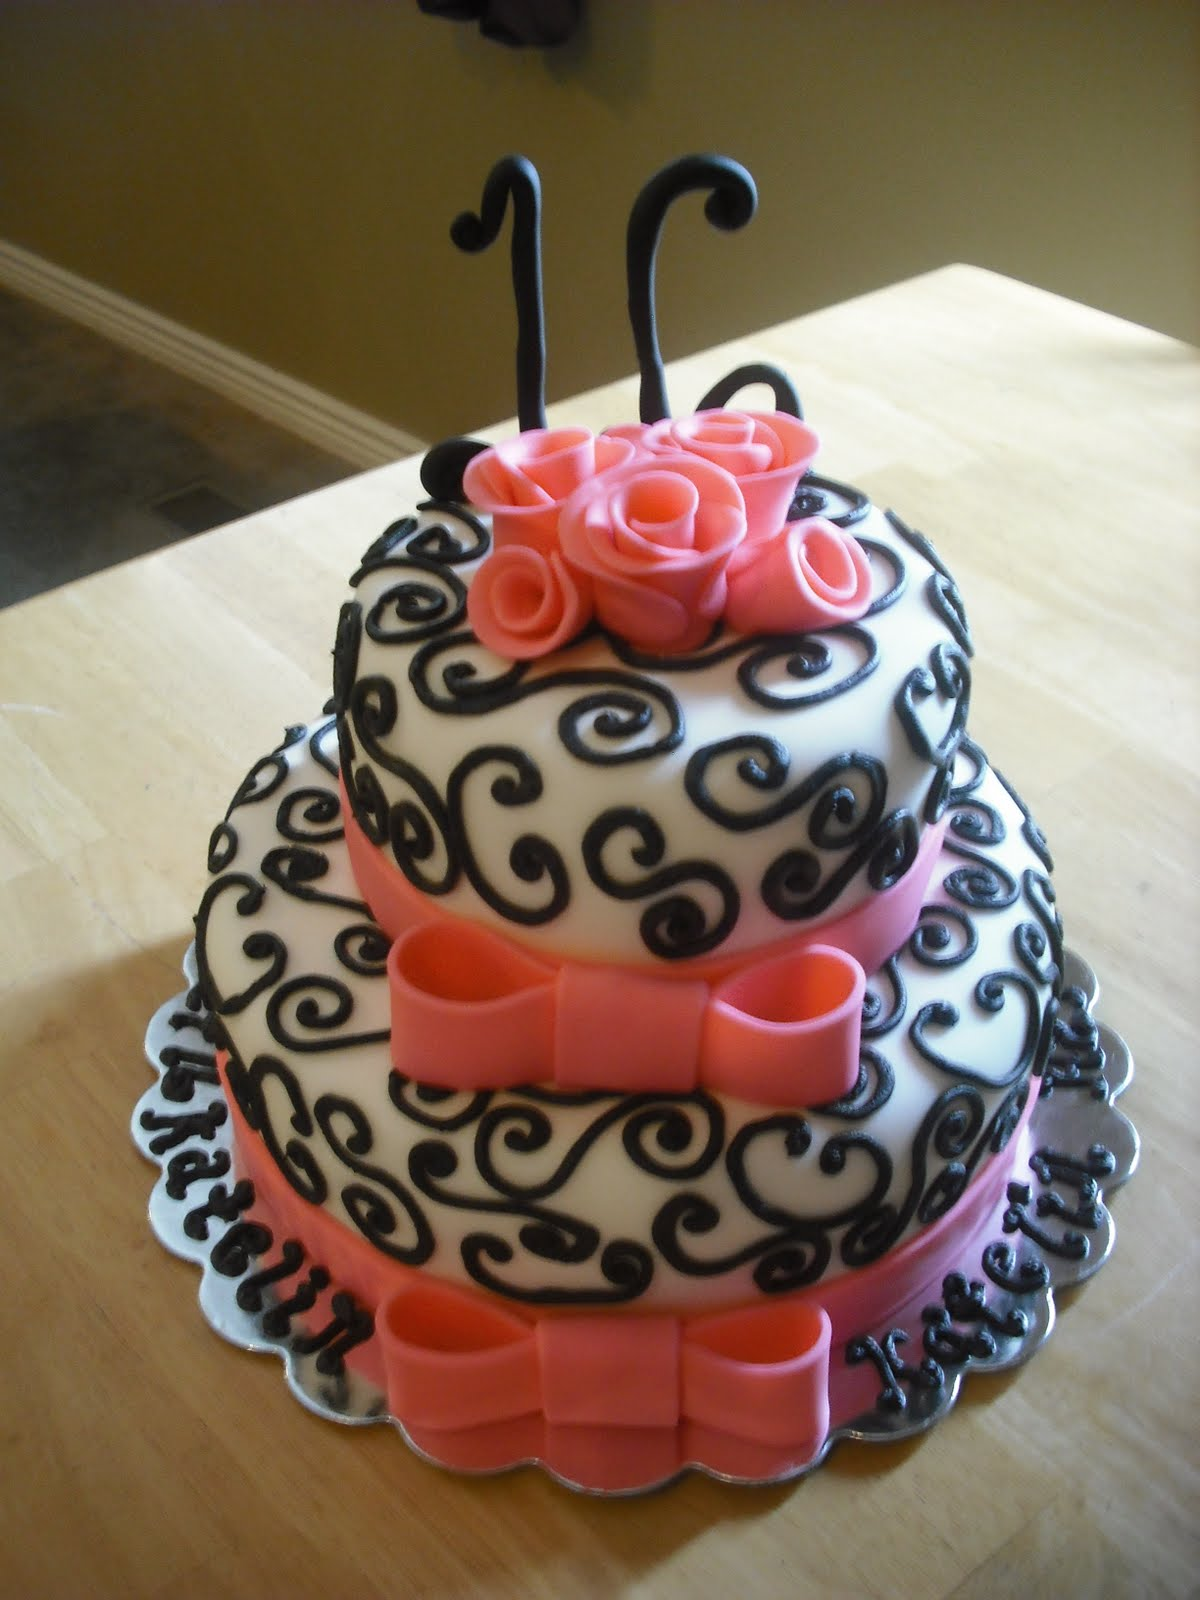 Cake Designs For Sweet Sixteen : Sprinklebelle: Sweet 16 Cake